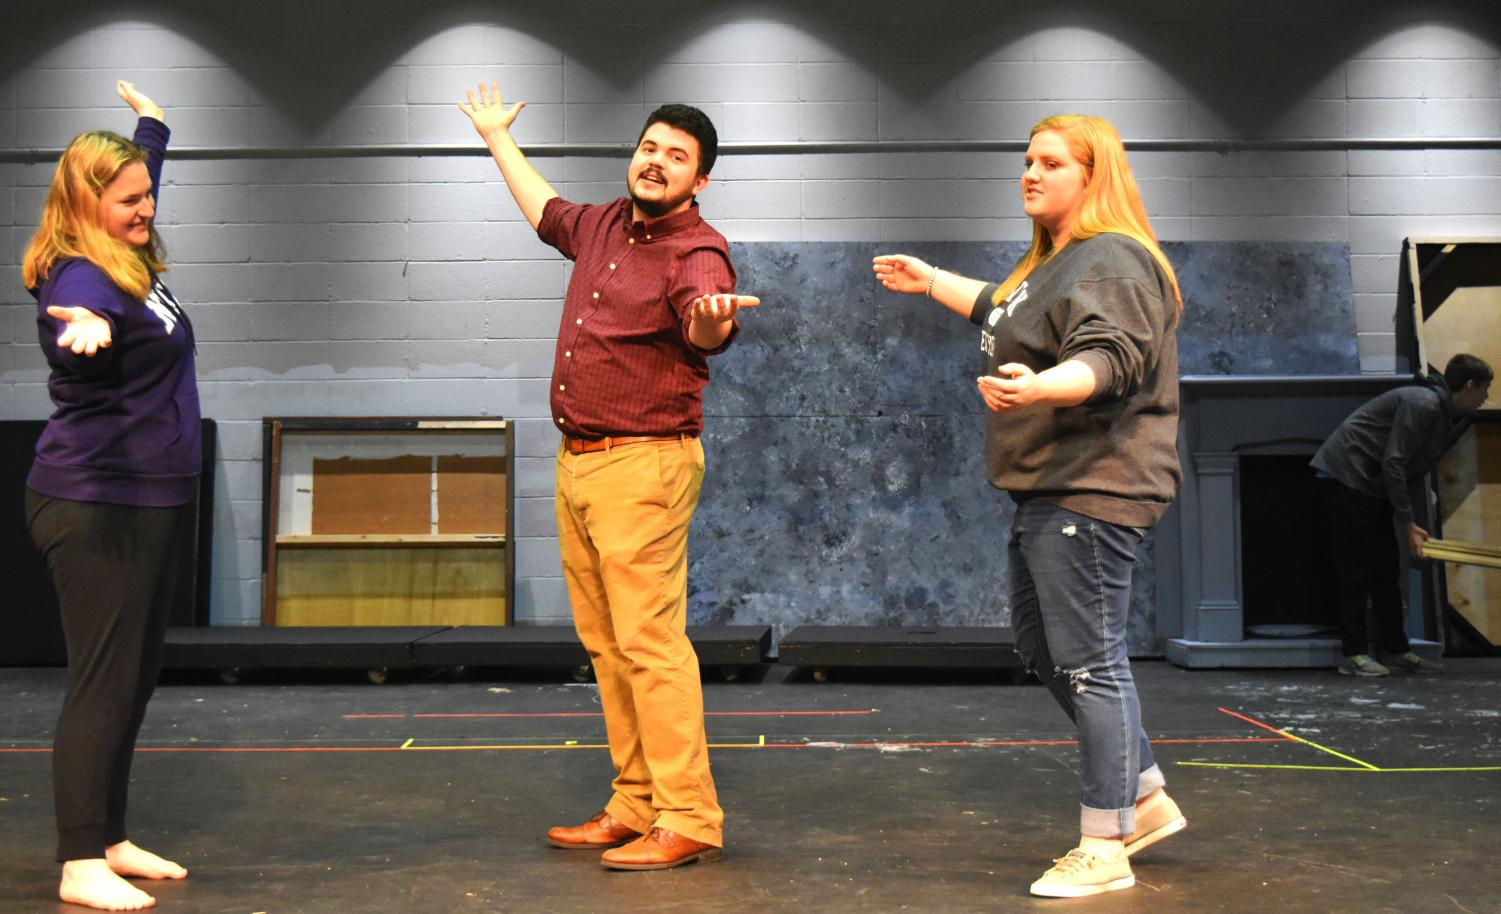 Seniors Abigayle Dorrance, Sophie Reidt and choreographer Joe Milliano rehearse a tap routine to go along with the song